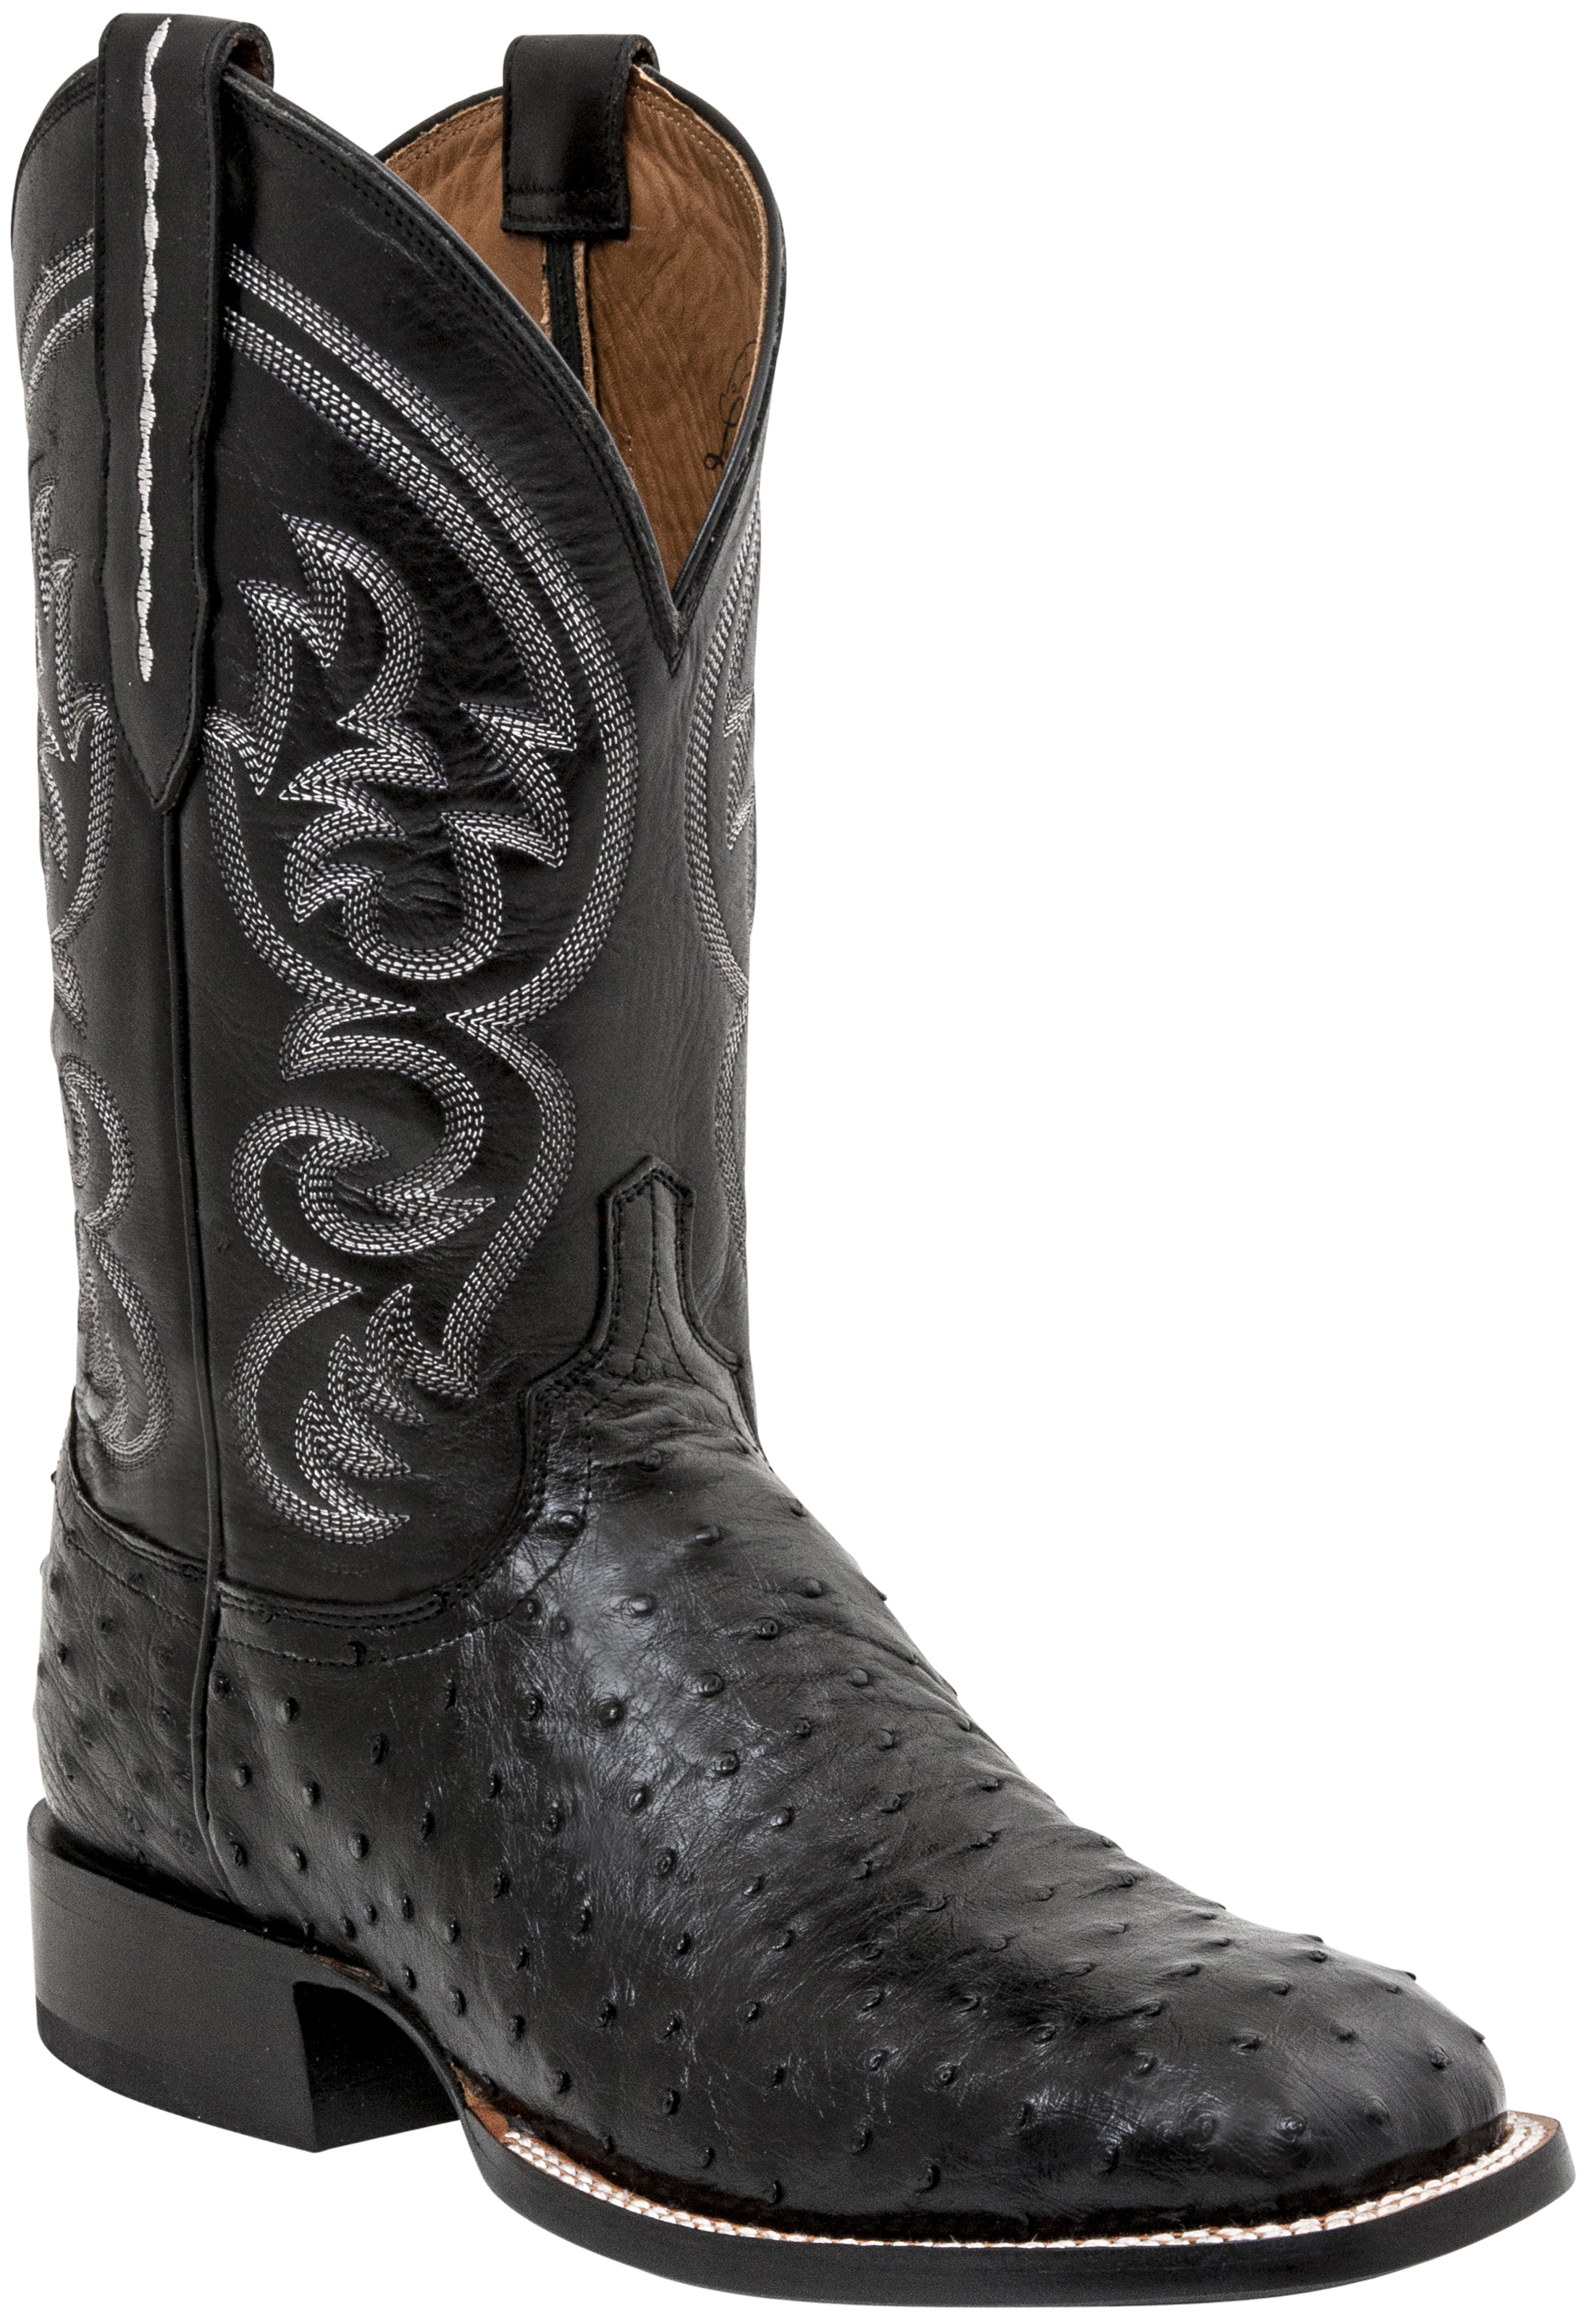 Men's Cowboy Boots & Shoes - Sheplers